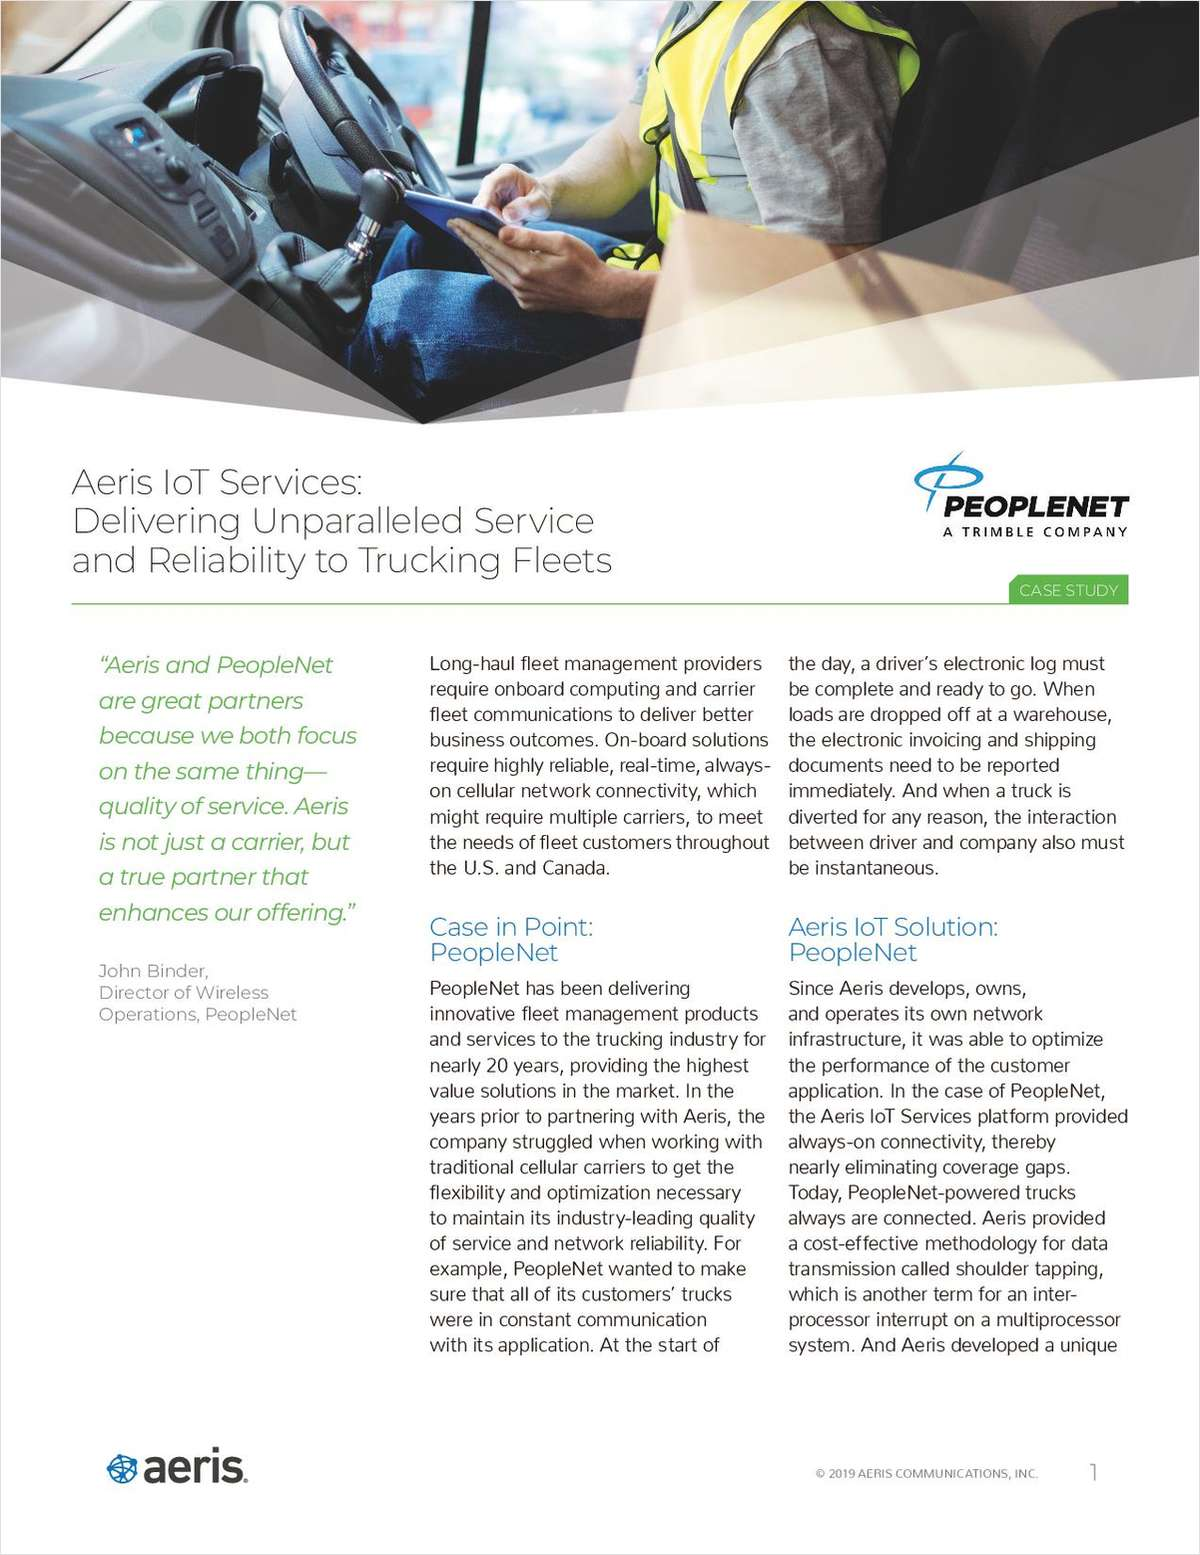 Aeris Delivering Unparalleled Service and Reliability to Trucking Fleets